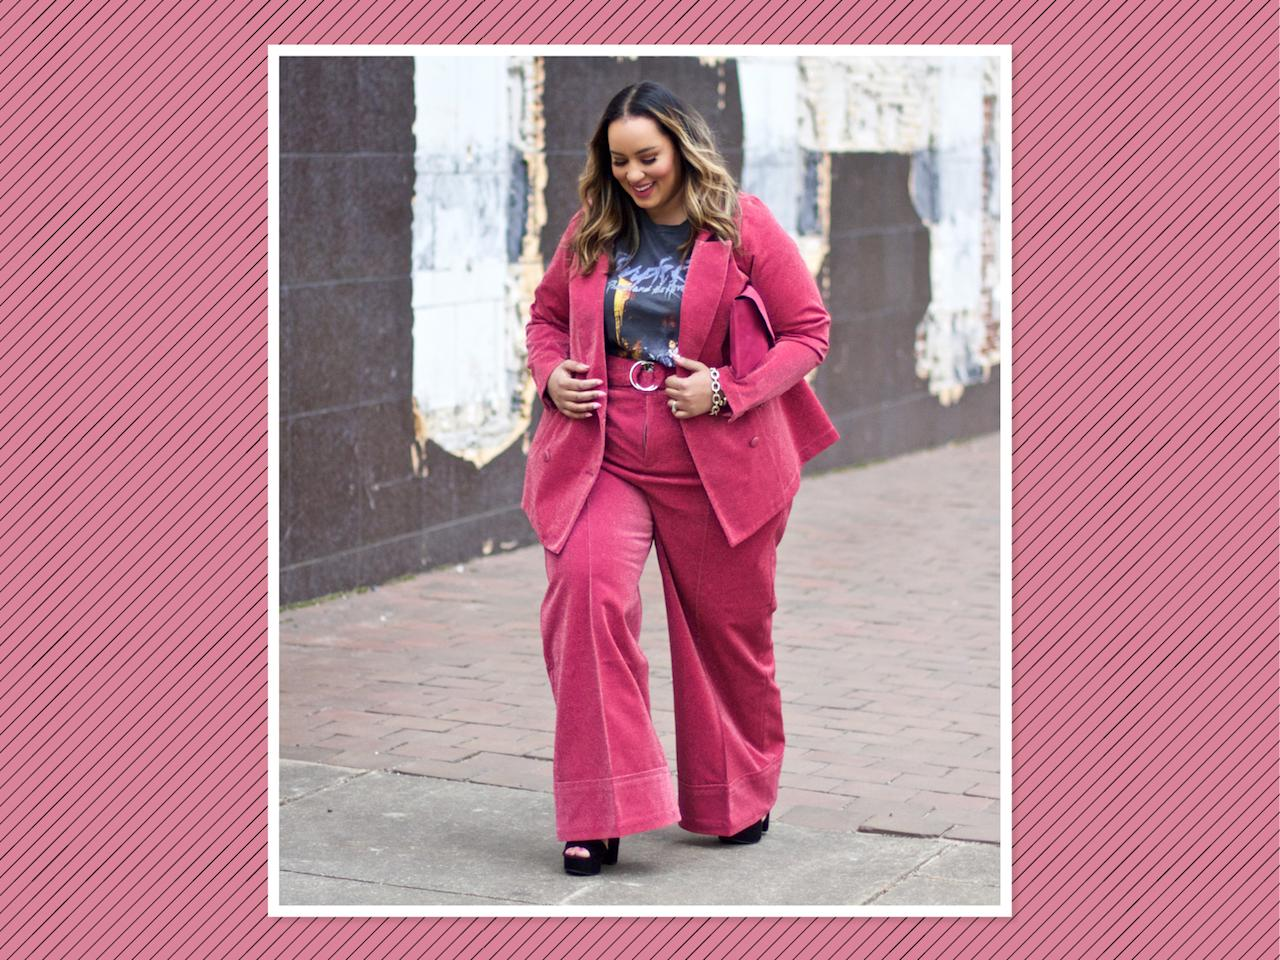 "<p>A band tee never looked so chic than when paired with this must-have pink co-ord set from Premme Us, Jay Glitter <a rel=""nofollow"" href=""https://premme.us/collections/all/products/jay-glitter-blazer"">jacket</a> $135, pants $129. (Photo: <a rel=""nofollow"" href=""https://www.instagram.com/p/BfEl7ESFLga/?hl=en&taken-by=iambeauticurve"">Rochelle Johnson</a> via Instagram) </p>"